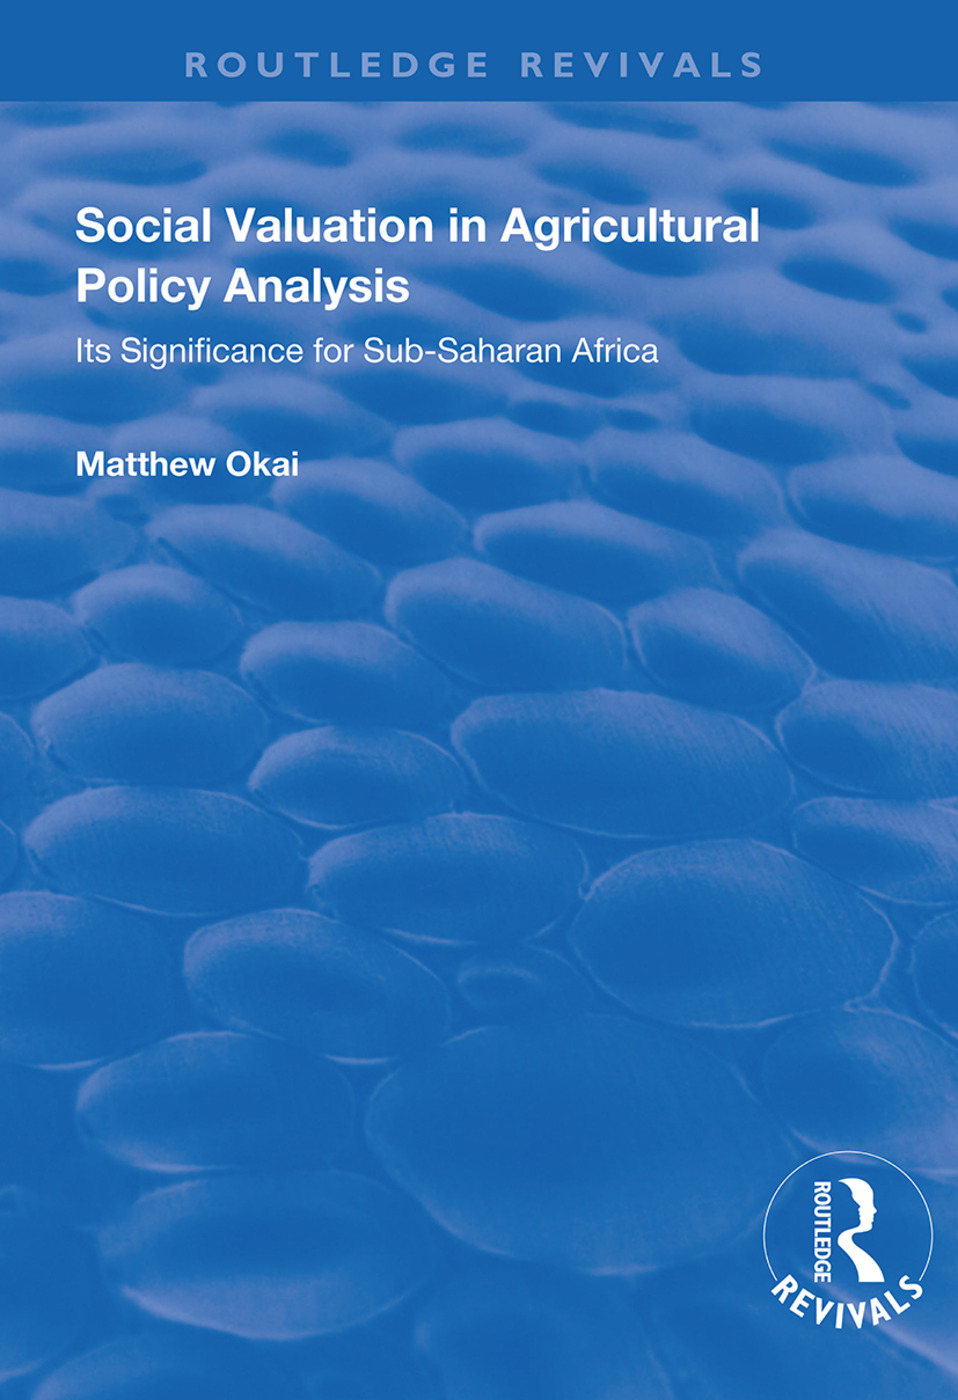 Social Valuation in Agricultural Policy Analysis